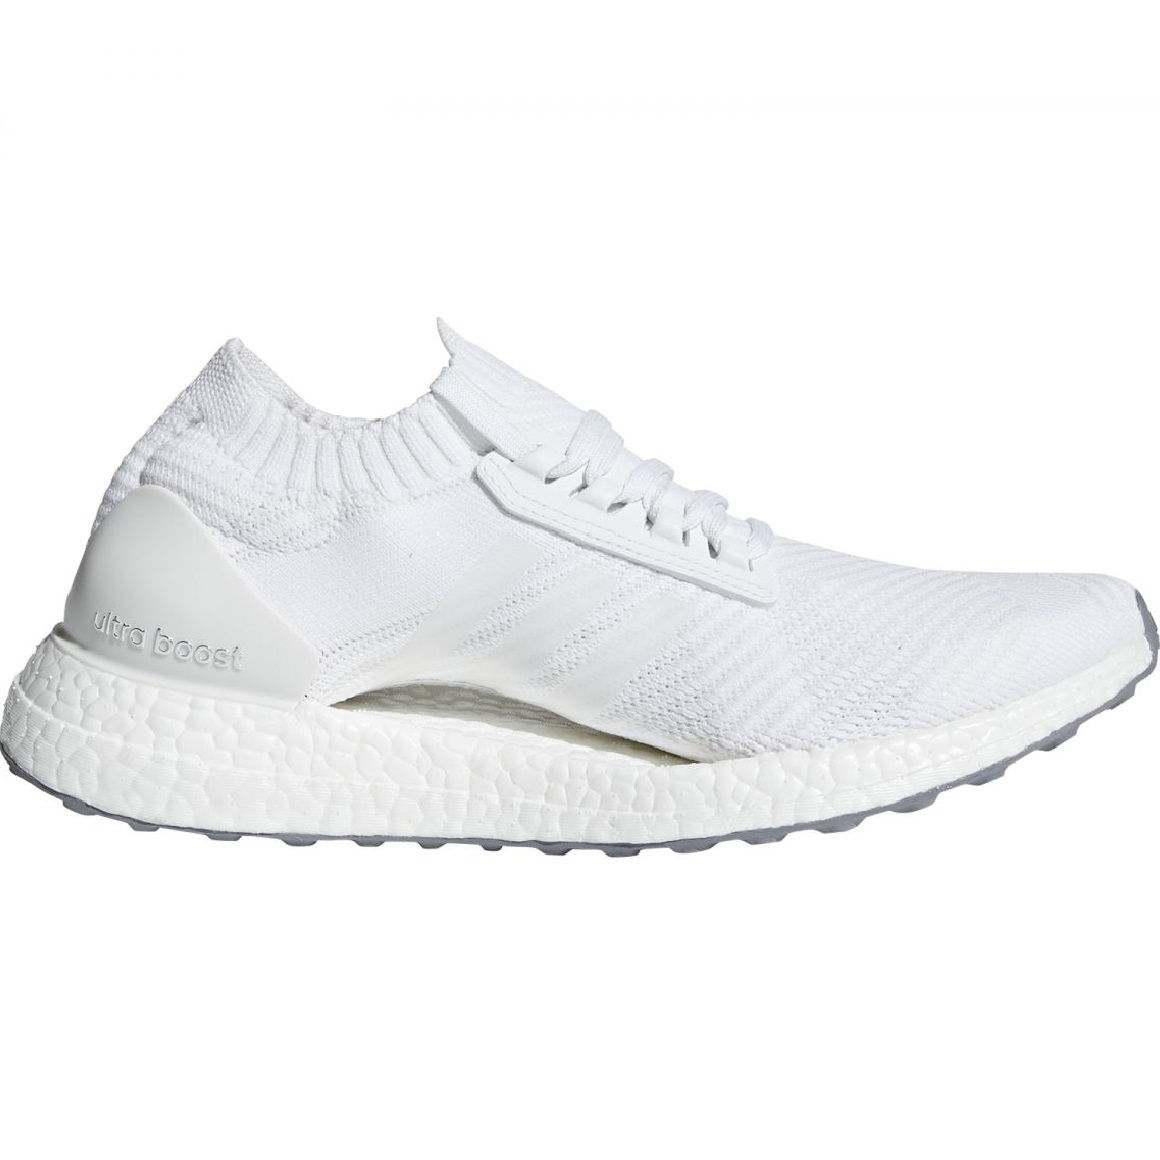 adidas ultra boost 4.0 damen